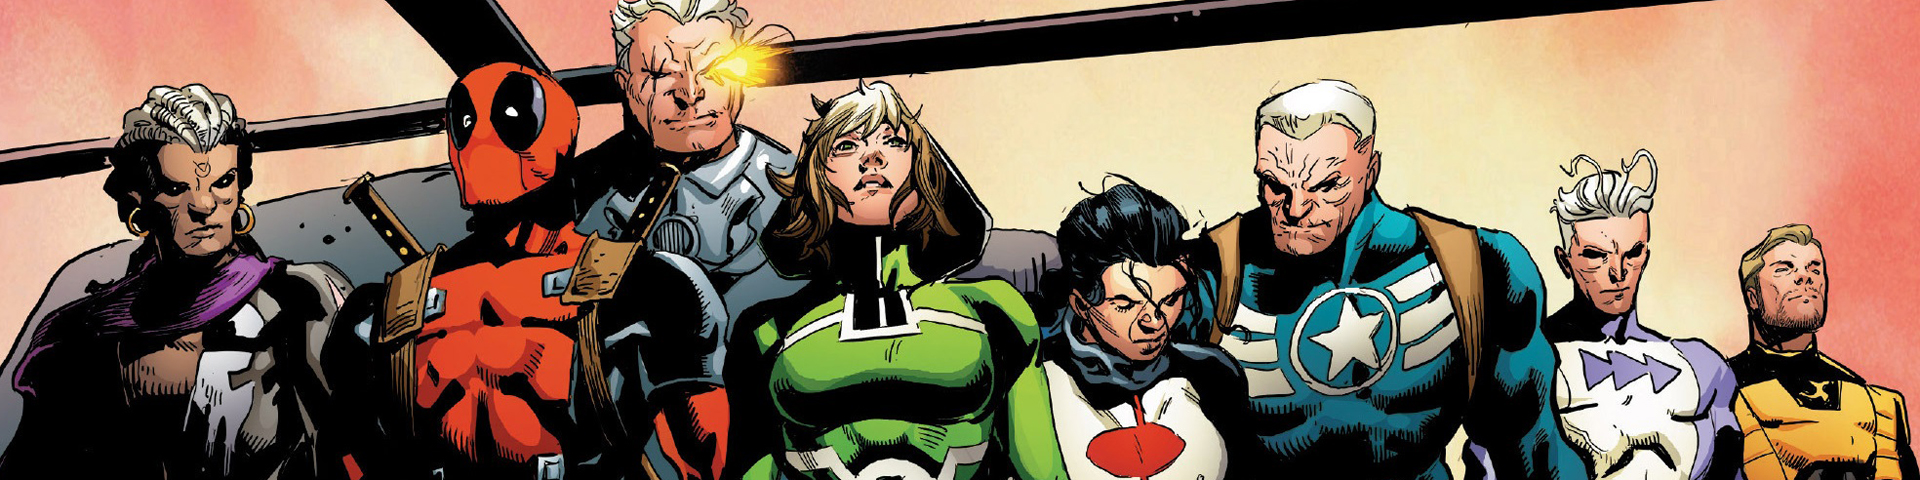 The Avengers team stands ready for their next assignment.